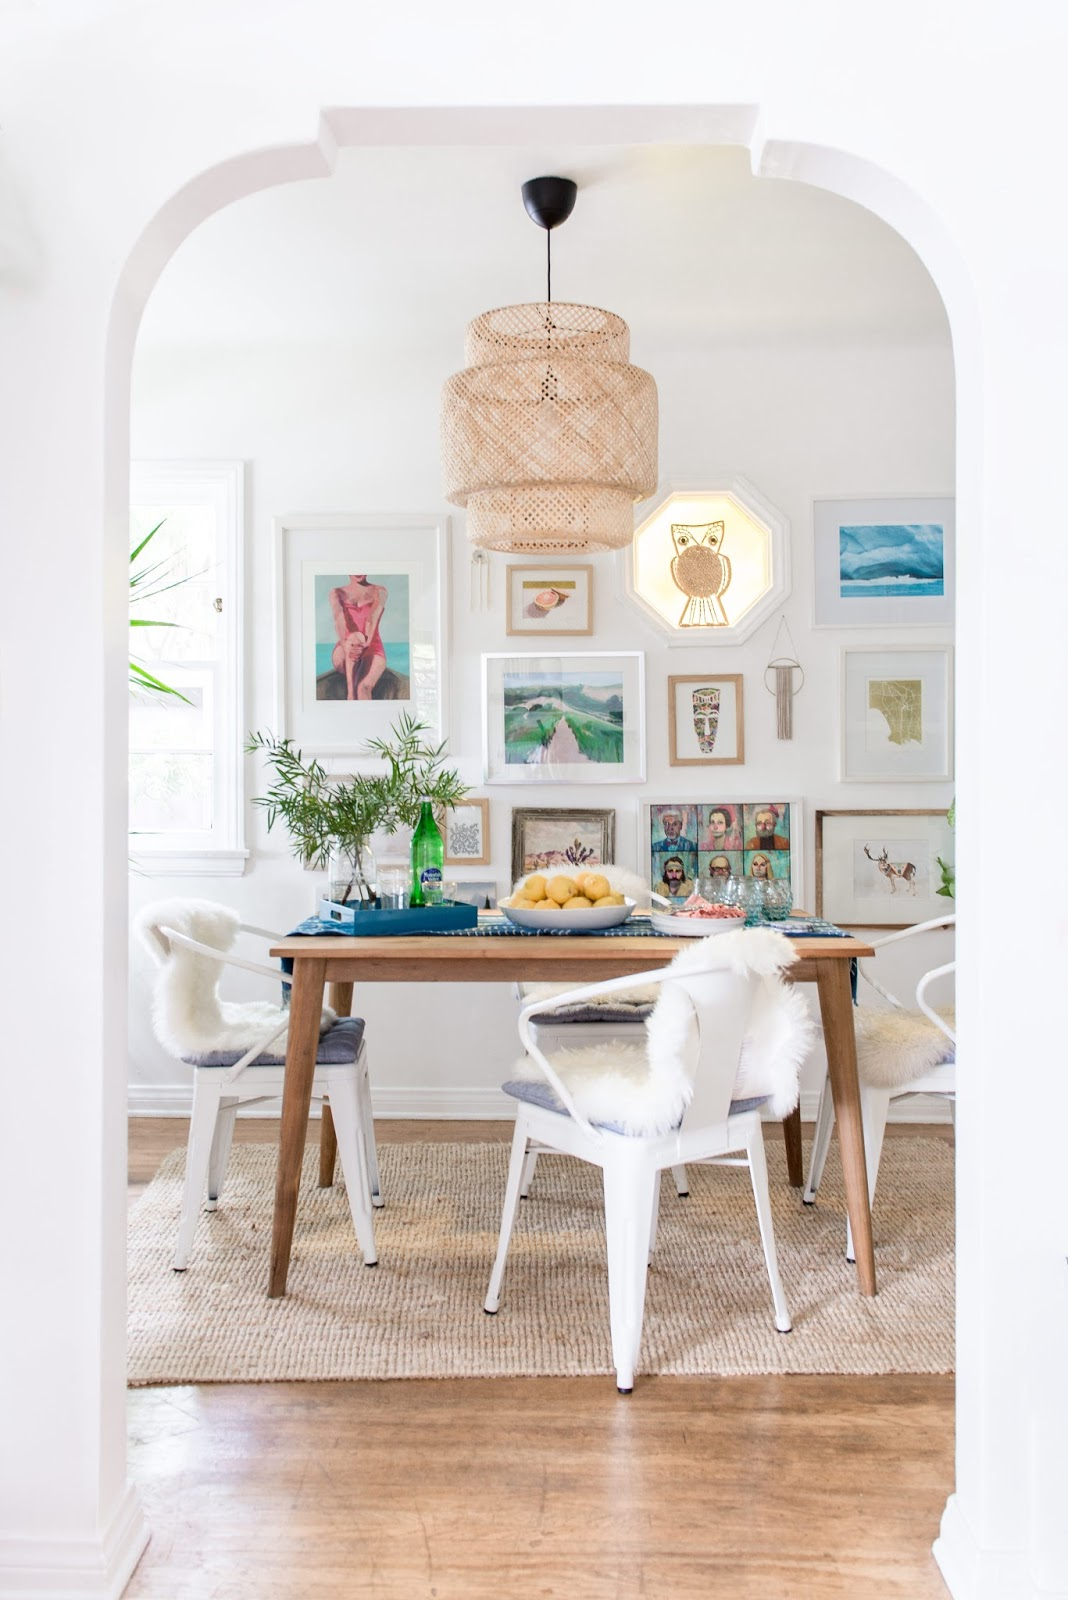 The Dining Room Is One Of The Spaces Where I Definitely Took A More Playful  Approach To Decorating. We Started Off By Painting The Entire House A Nice  ...